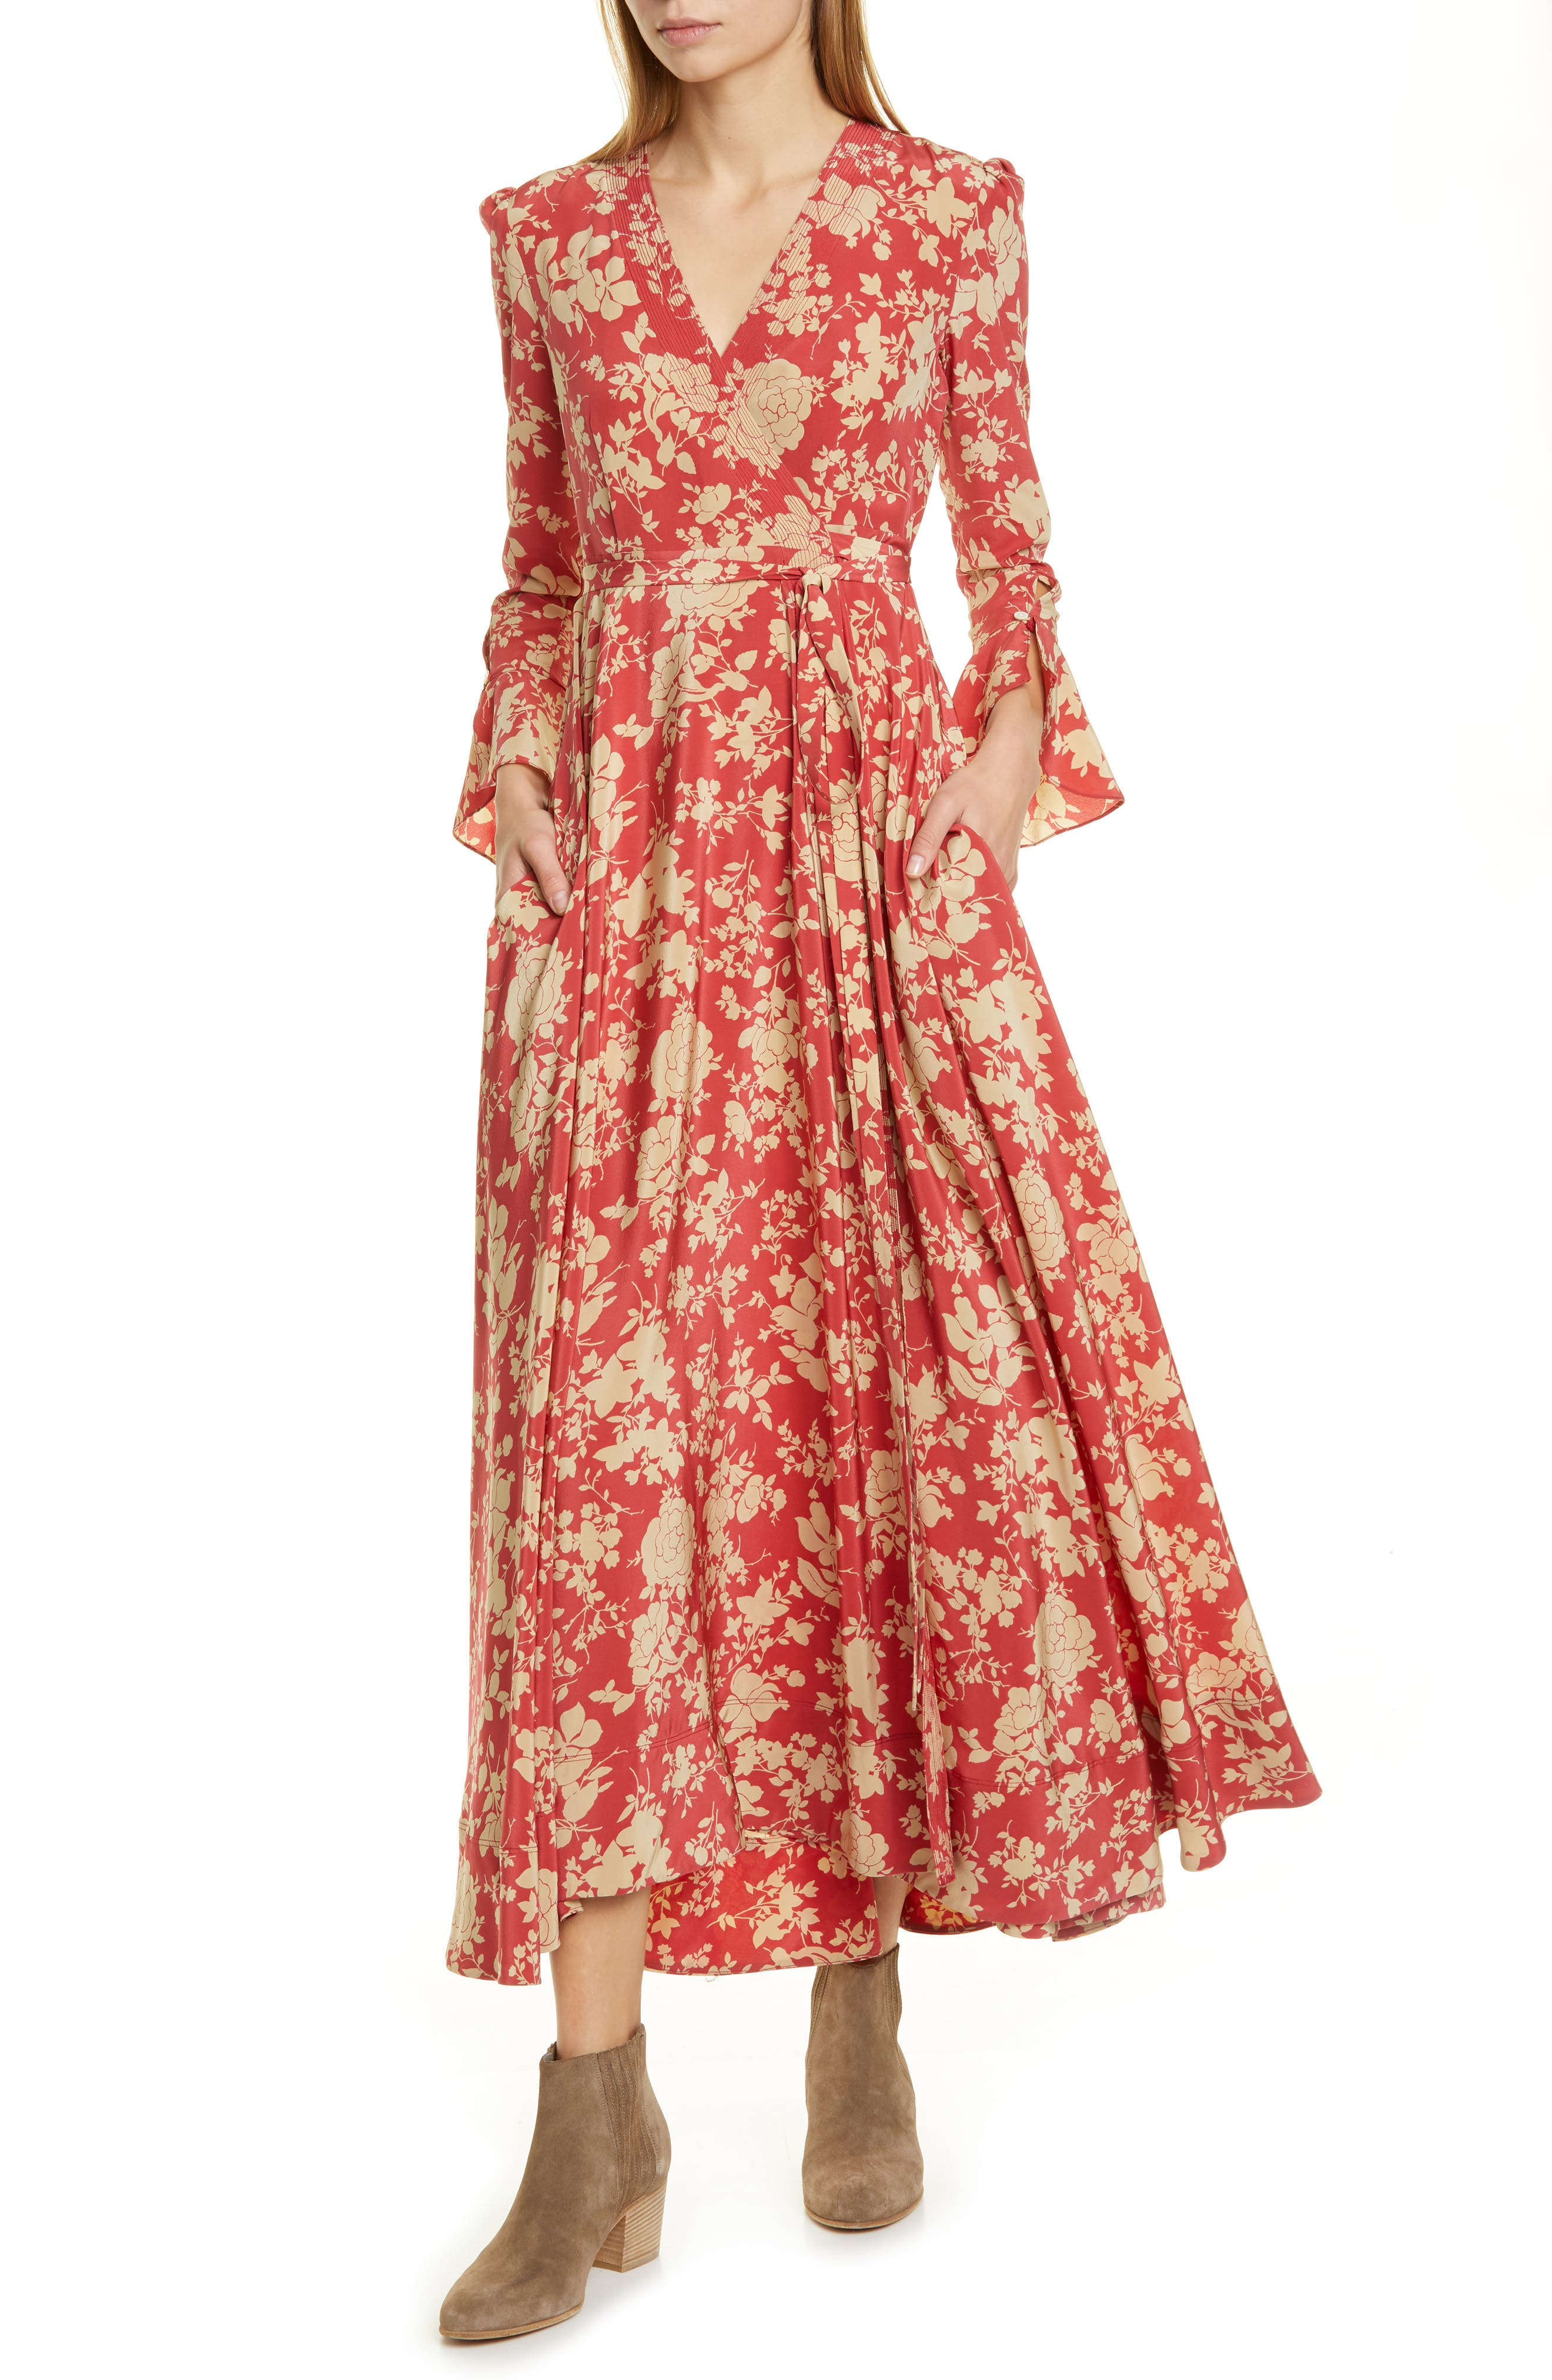 Polo Ralph Lauren Harlow Floral Wrap Dress, Red